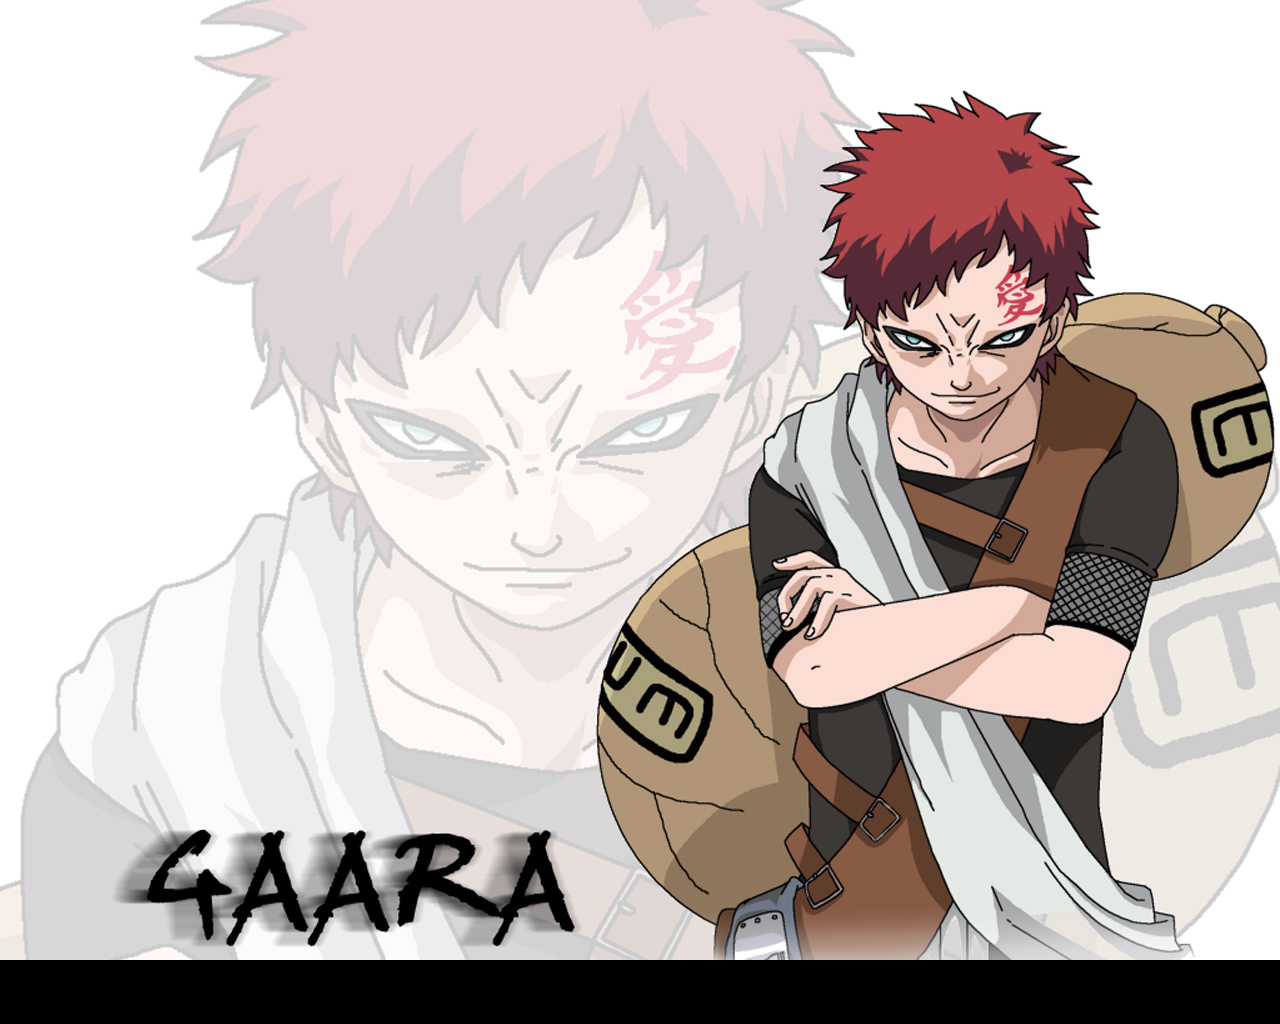 Gaara wallpapers 1280x1024